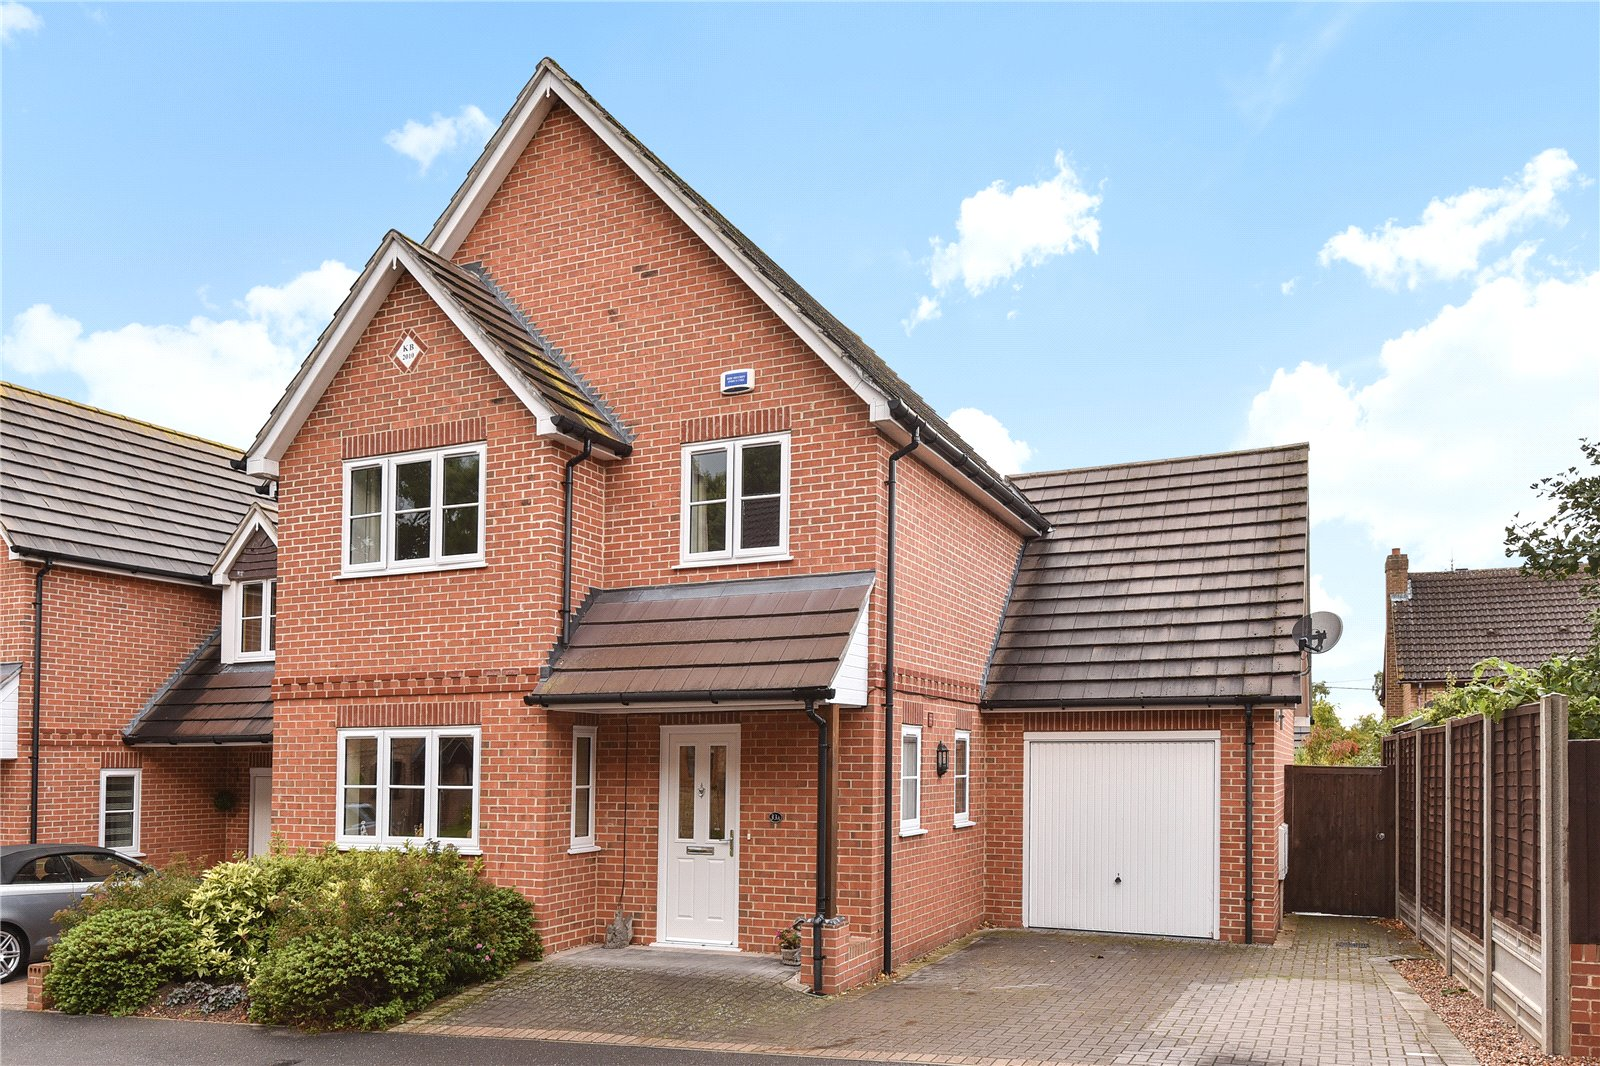 4 Bedrooms Detached House for sale in Cannon Close, College Town, Sandhurst, Berkshire, GU47